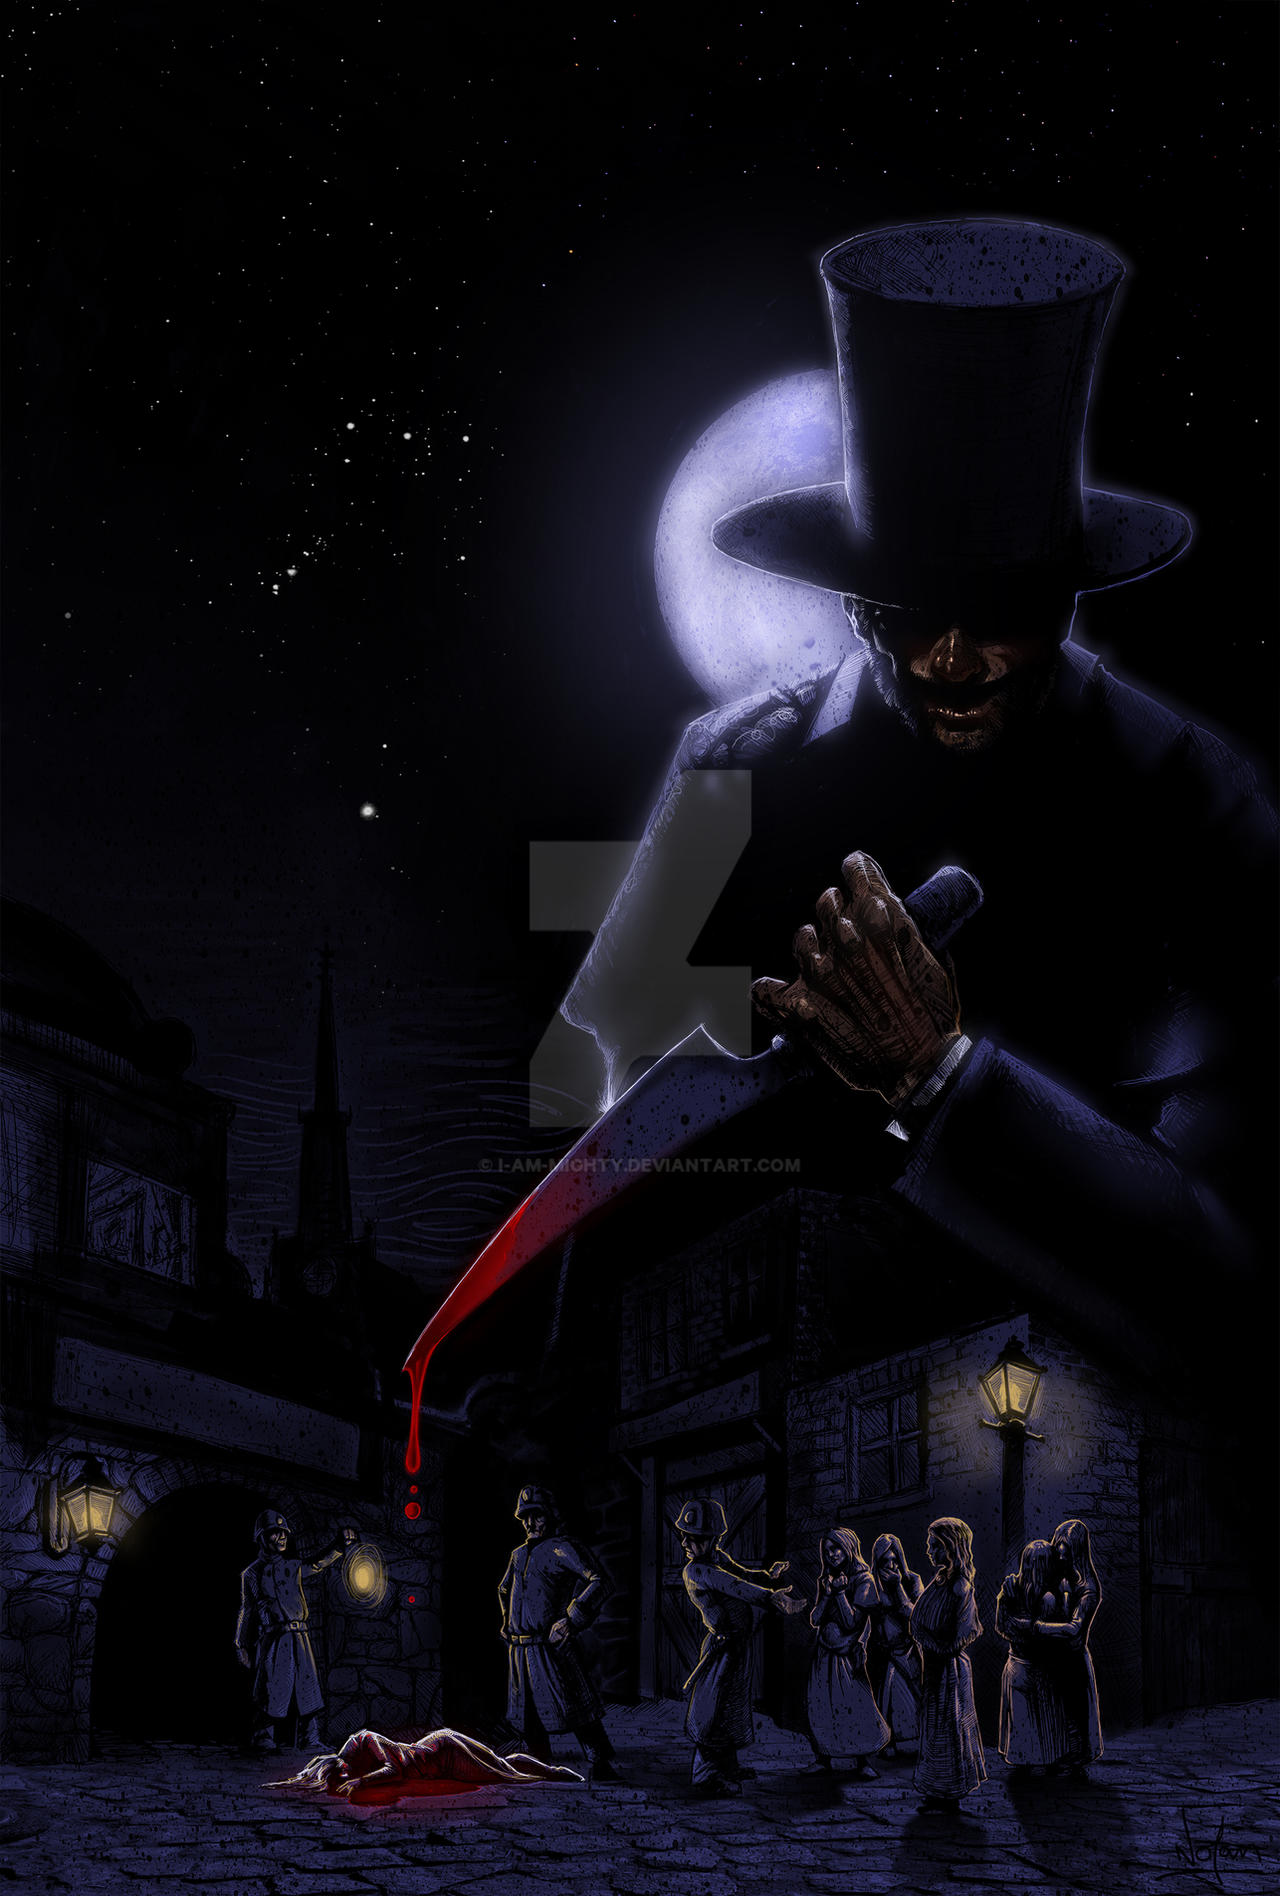 the psychopath case study: jack the ripper essay Despite high profile cases of piquerism, there has been relatively little  the  freudian psychologist dr judy kuriansky in an online essay  the jack the  ripper murders: a modus operandi and signature analysis  the ' polymorphously perverse' psychopath: understanding a strong empirical  relationship.